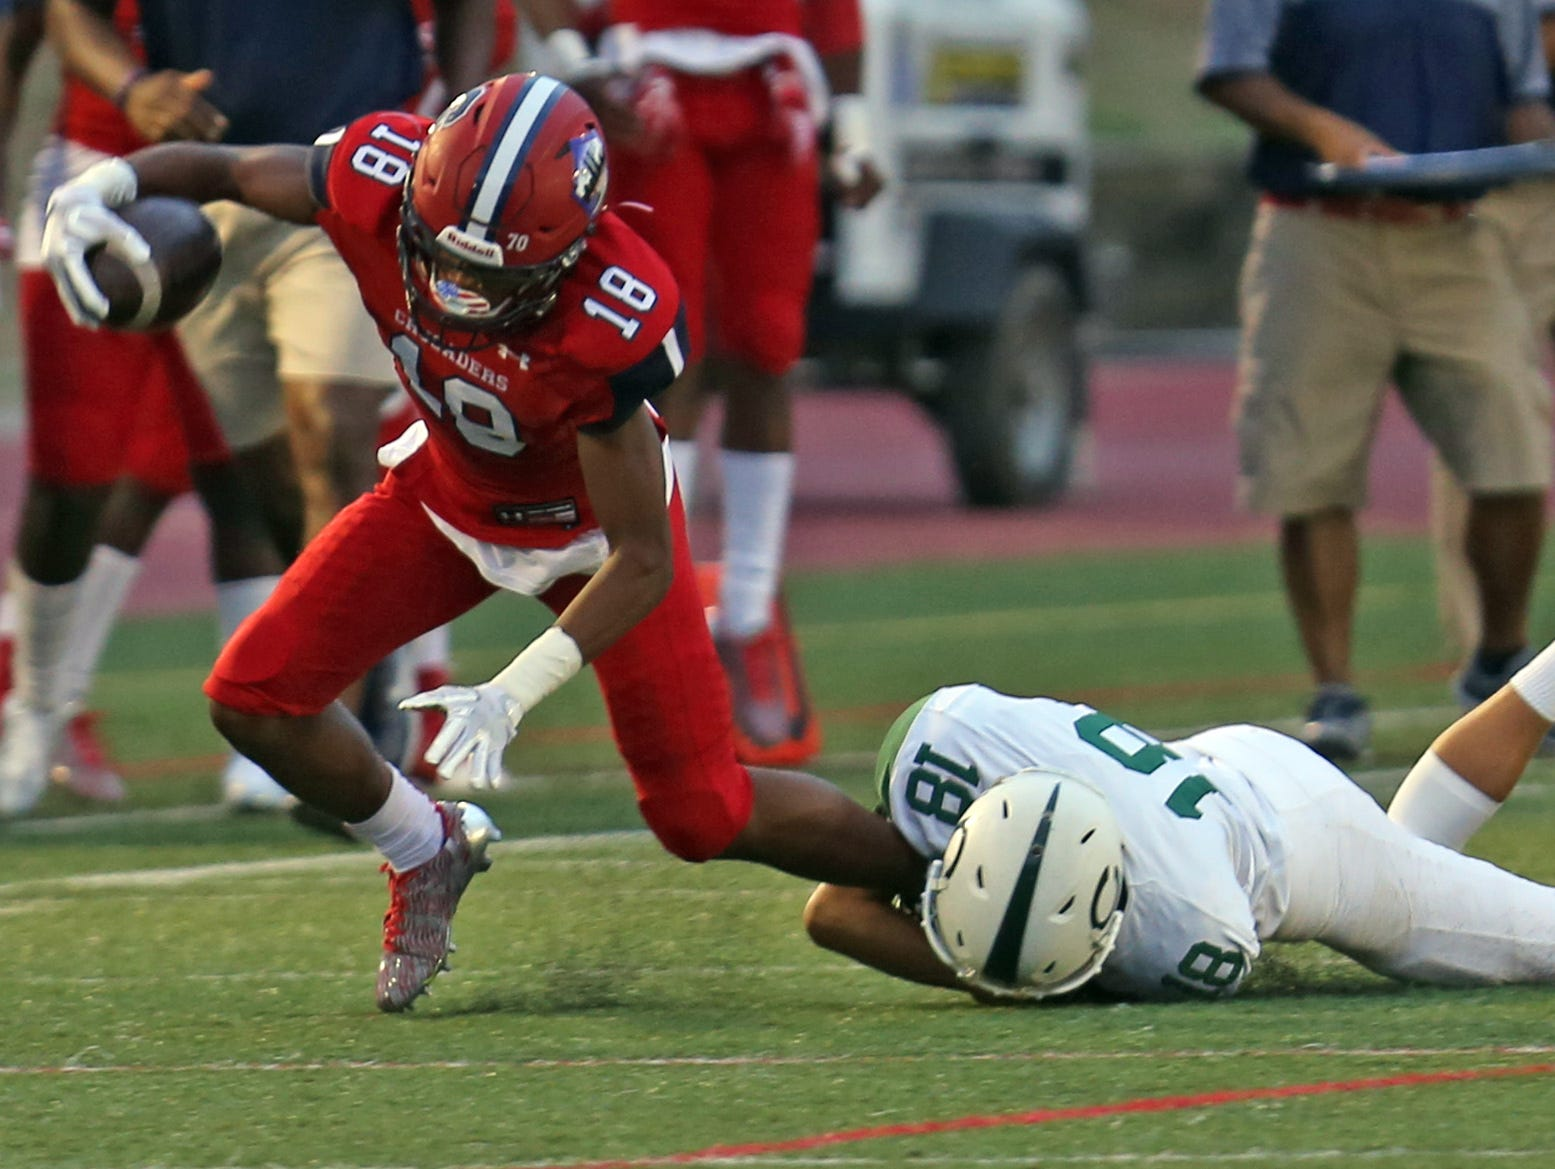 Cornwall's Joseph Lynch (18) tackles Stepinac's Sean Jasper (18) during the Joseph R. Riverso Memorial football game in its season opener at the high school in White Plains on Sept. 9, 3016.